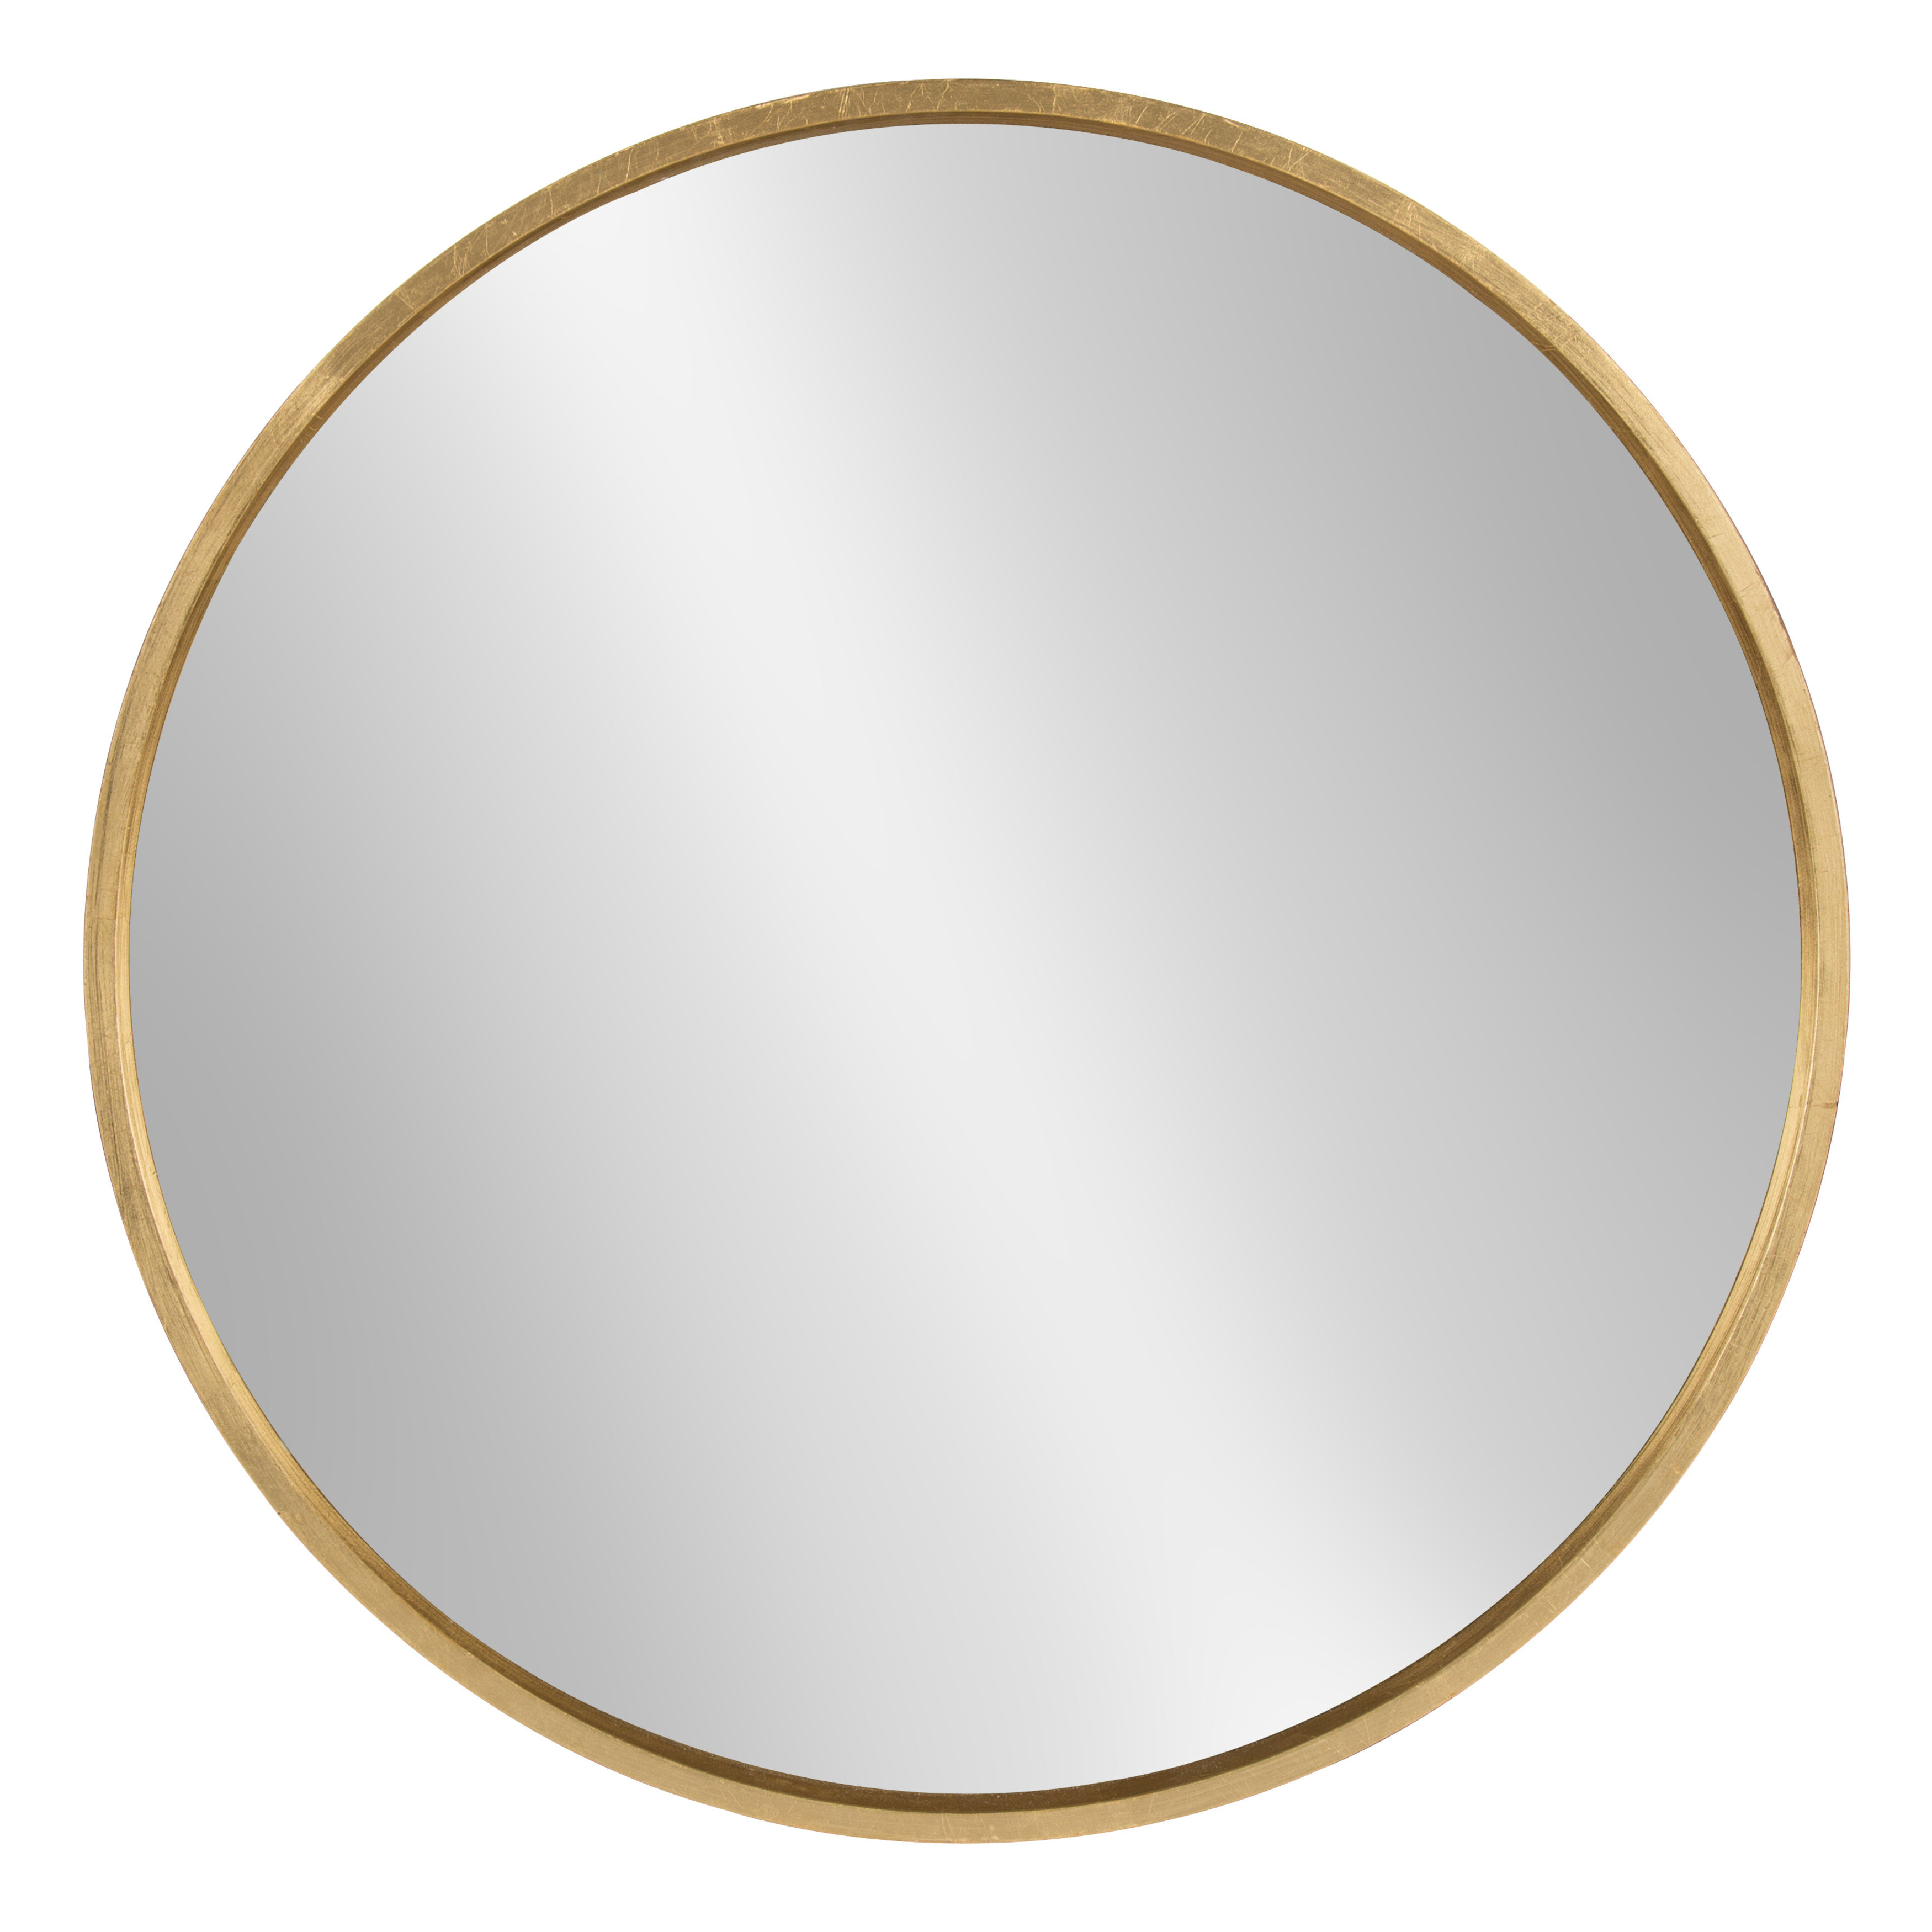 Gaunts Earthcott Modern & Contemporary Beveled Accent Mirrors Intended For Popular Tanner Accent Mirror (View 12 of 20)